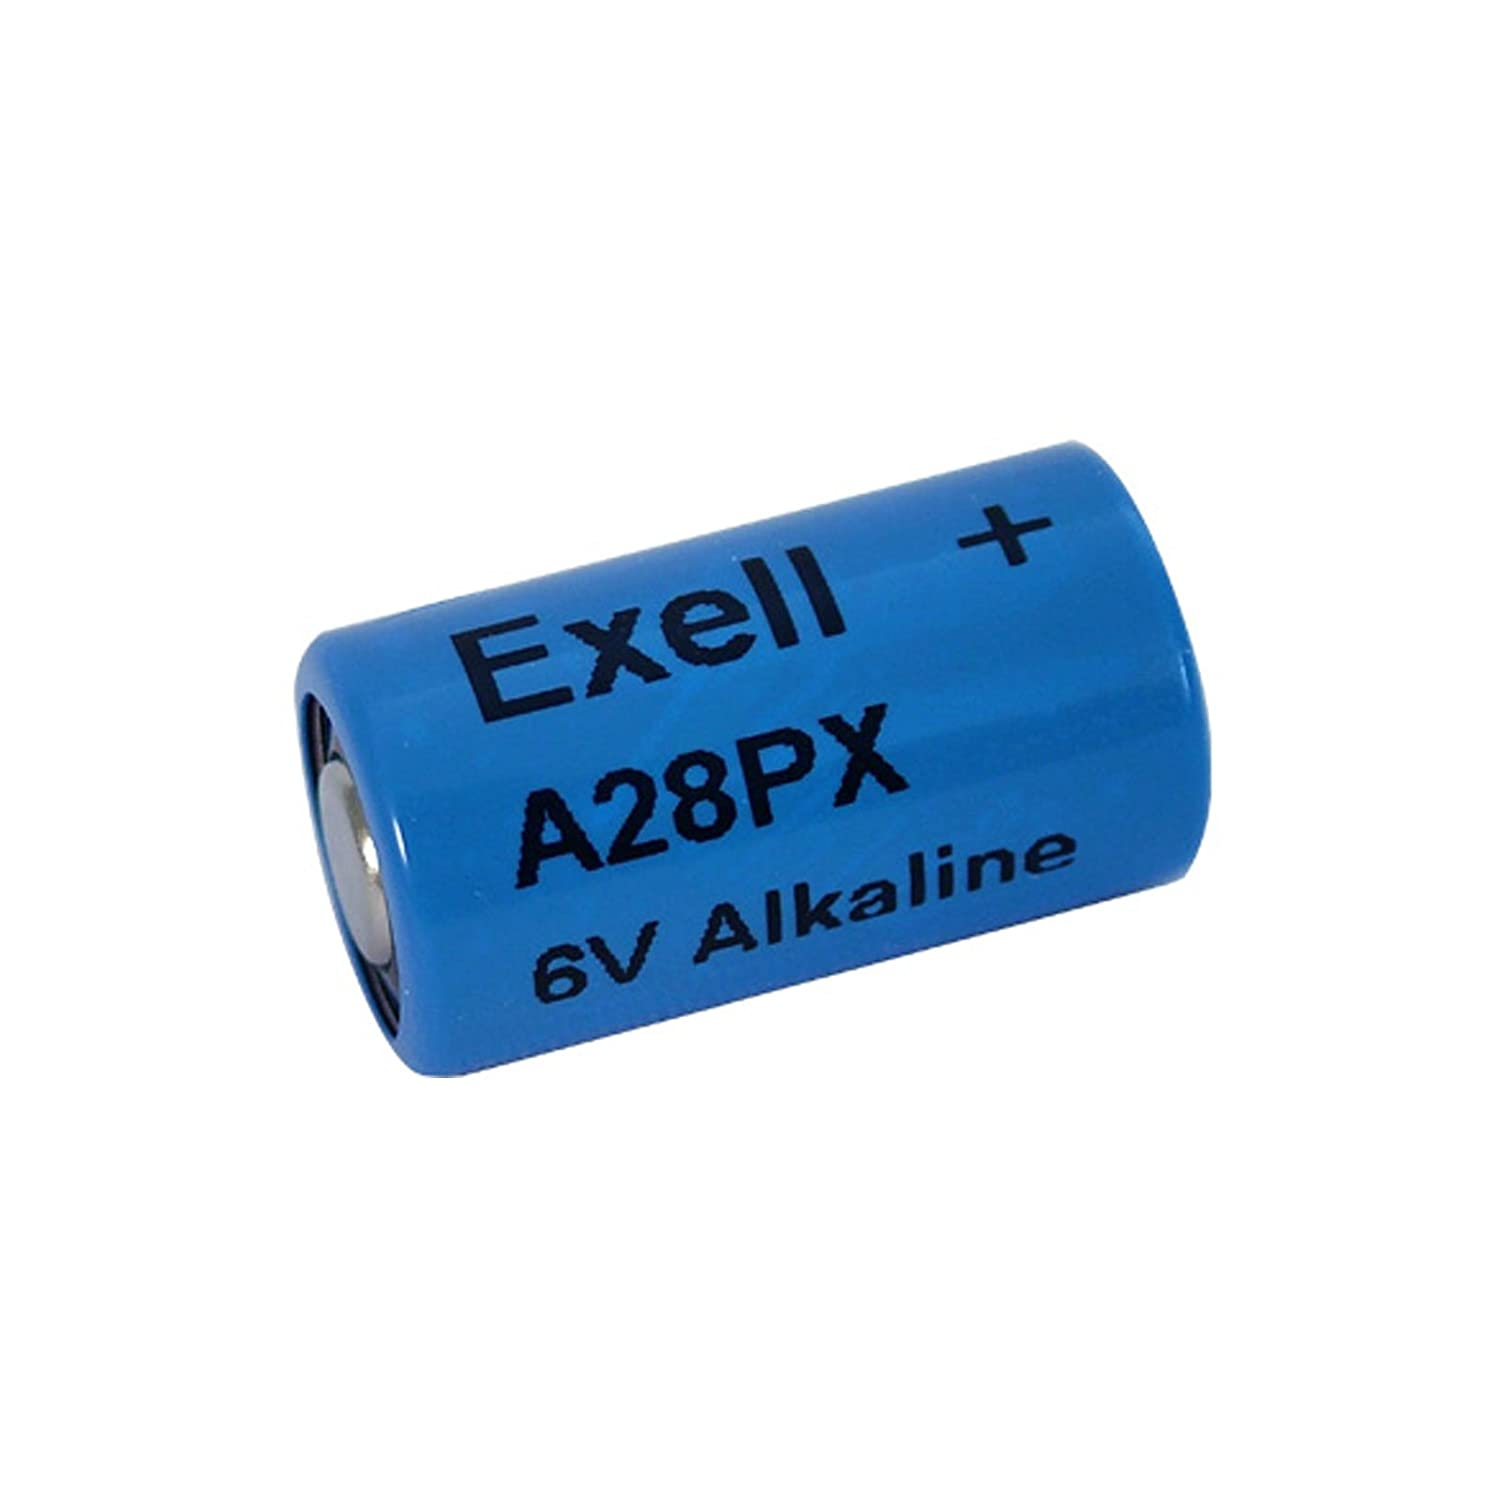 The A28PX is a battery replacement for the PX28 battery